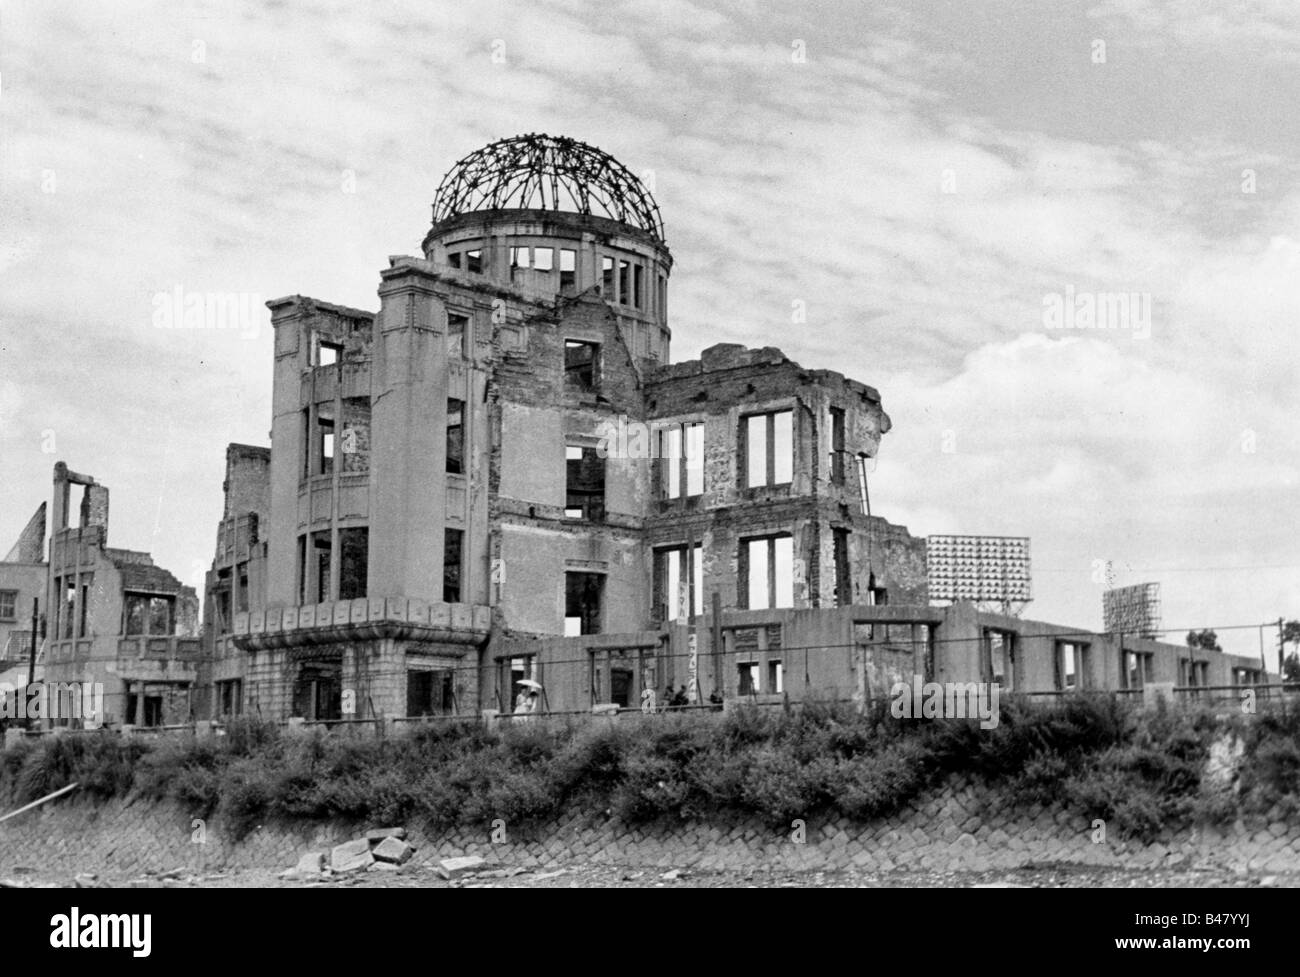 events, Second World War / WWII, Japan, Atomic bombing of Hiroshima, 6.8.1945, destroyed Prefectural Industrial - Stock Image